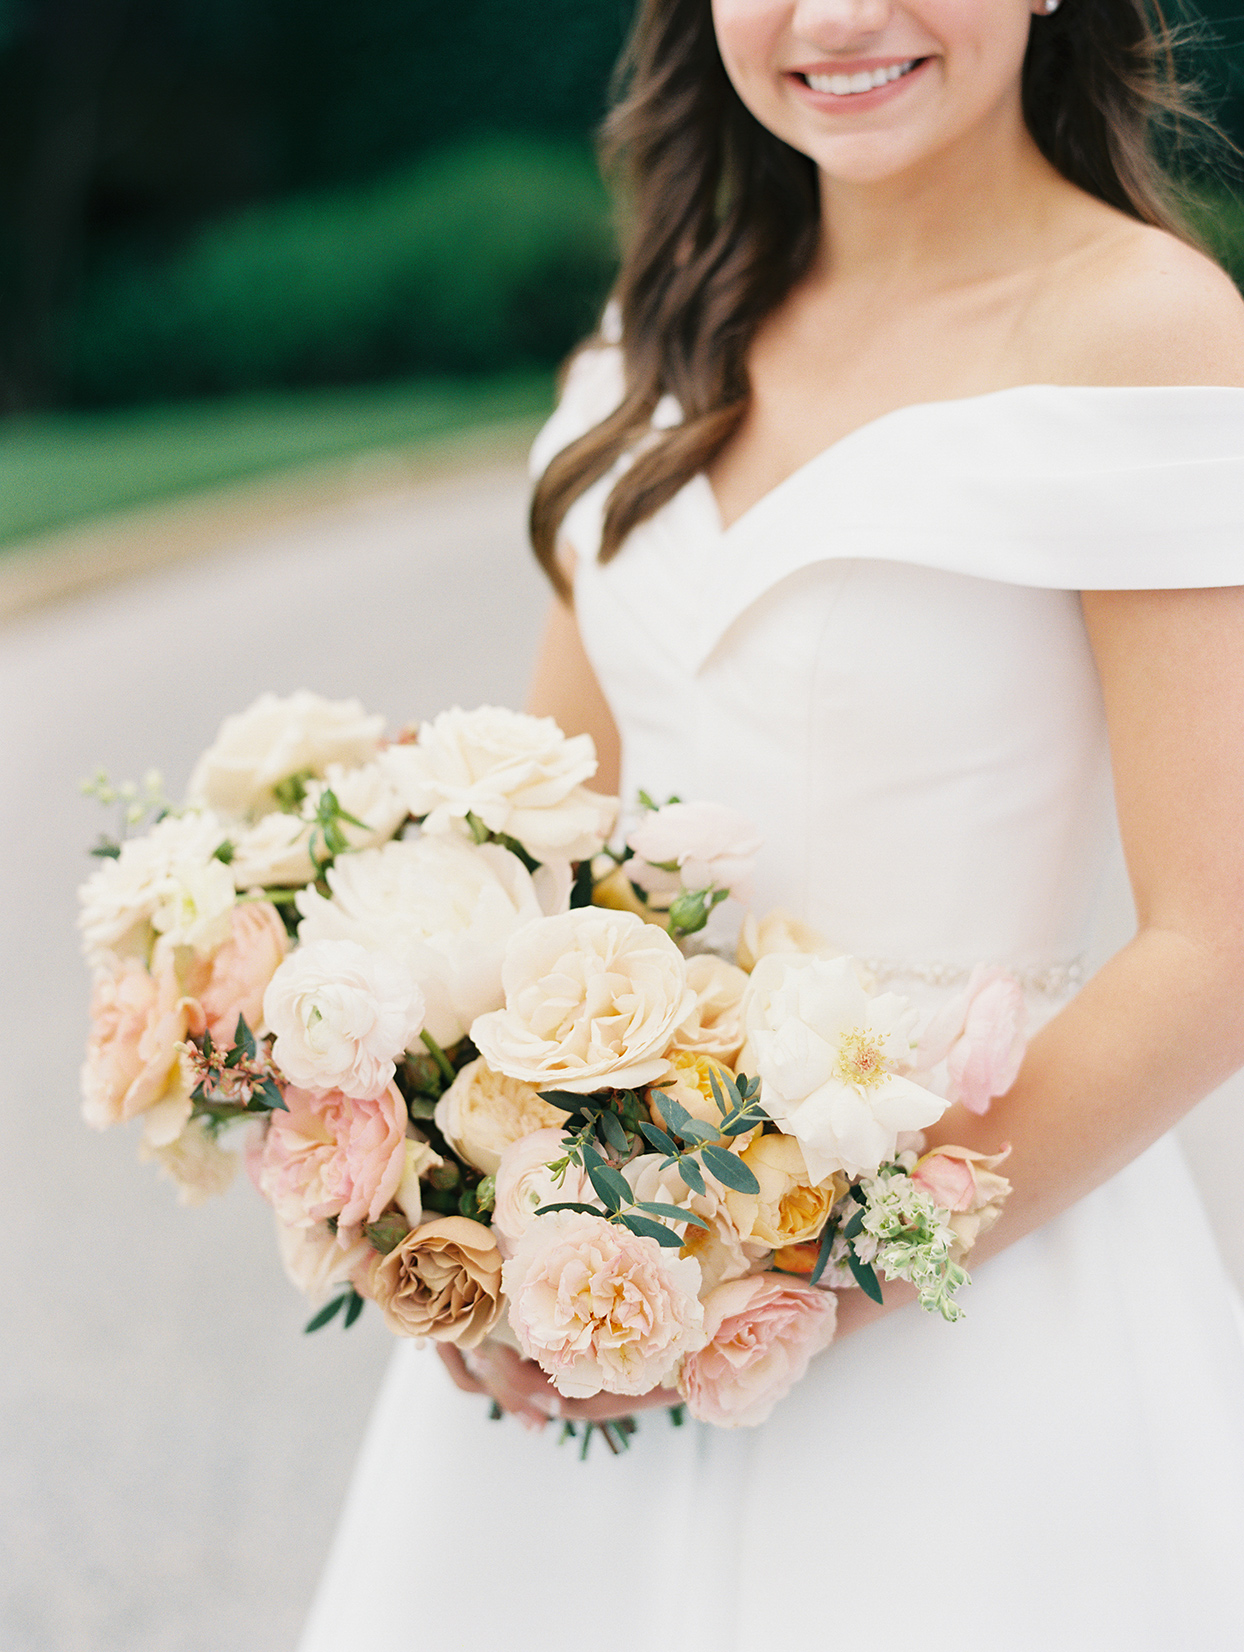 bride smiling holding blush toned floral bouquet